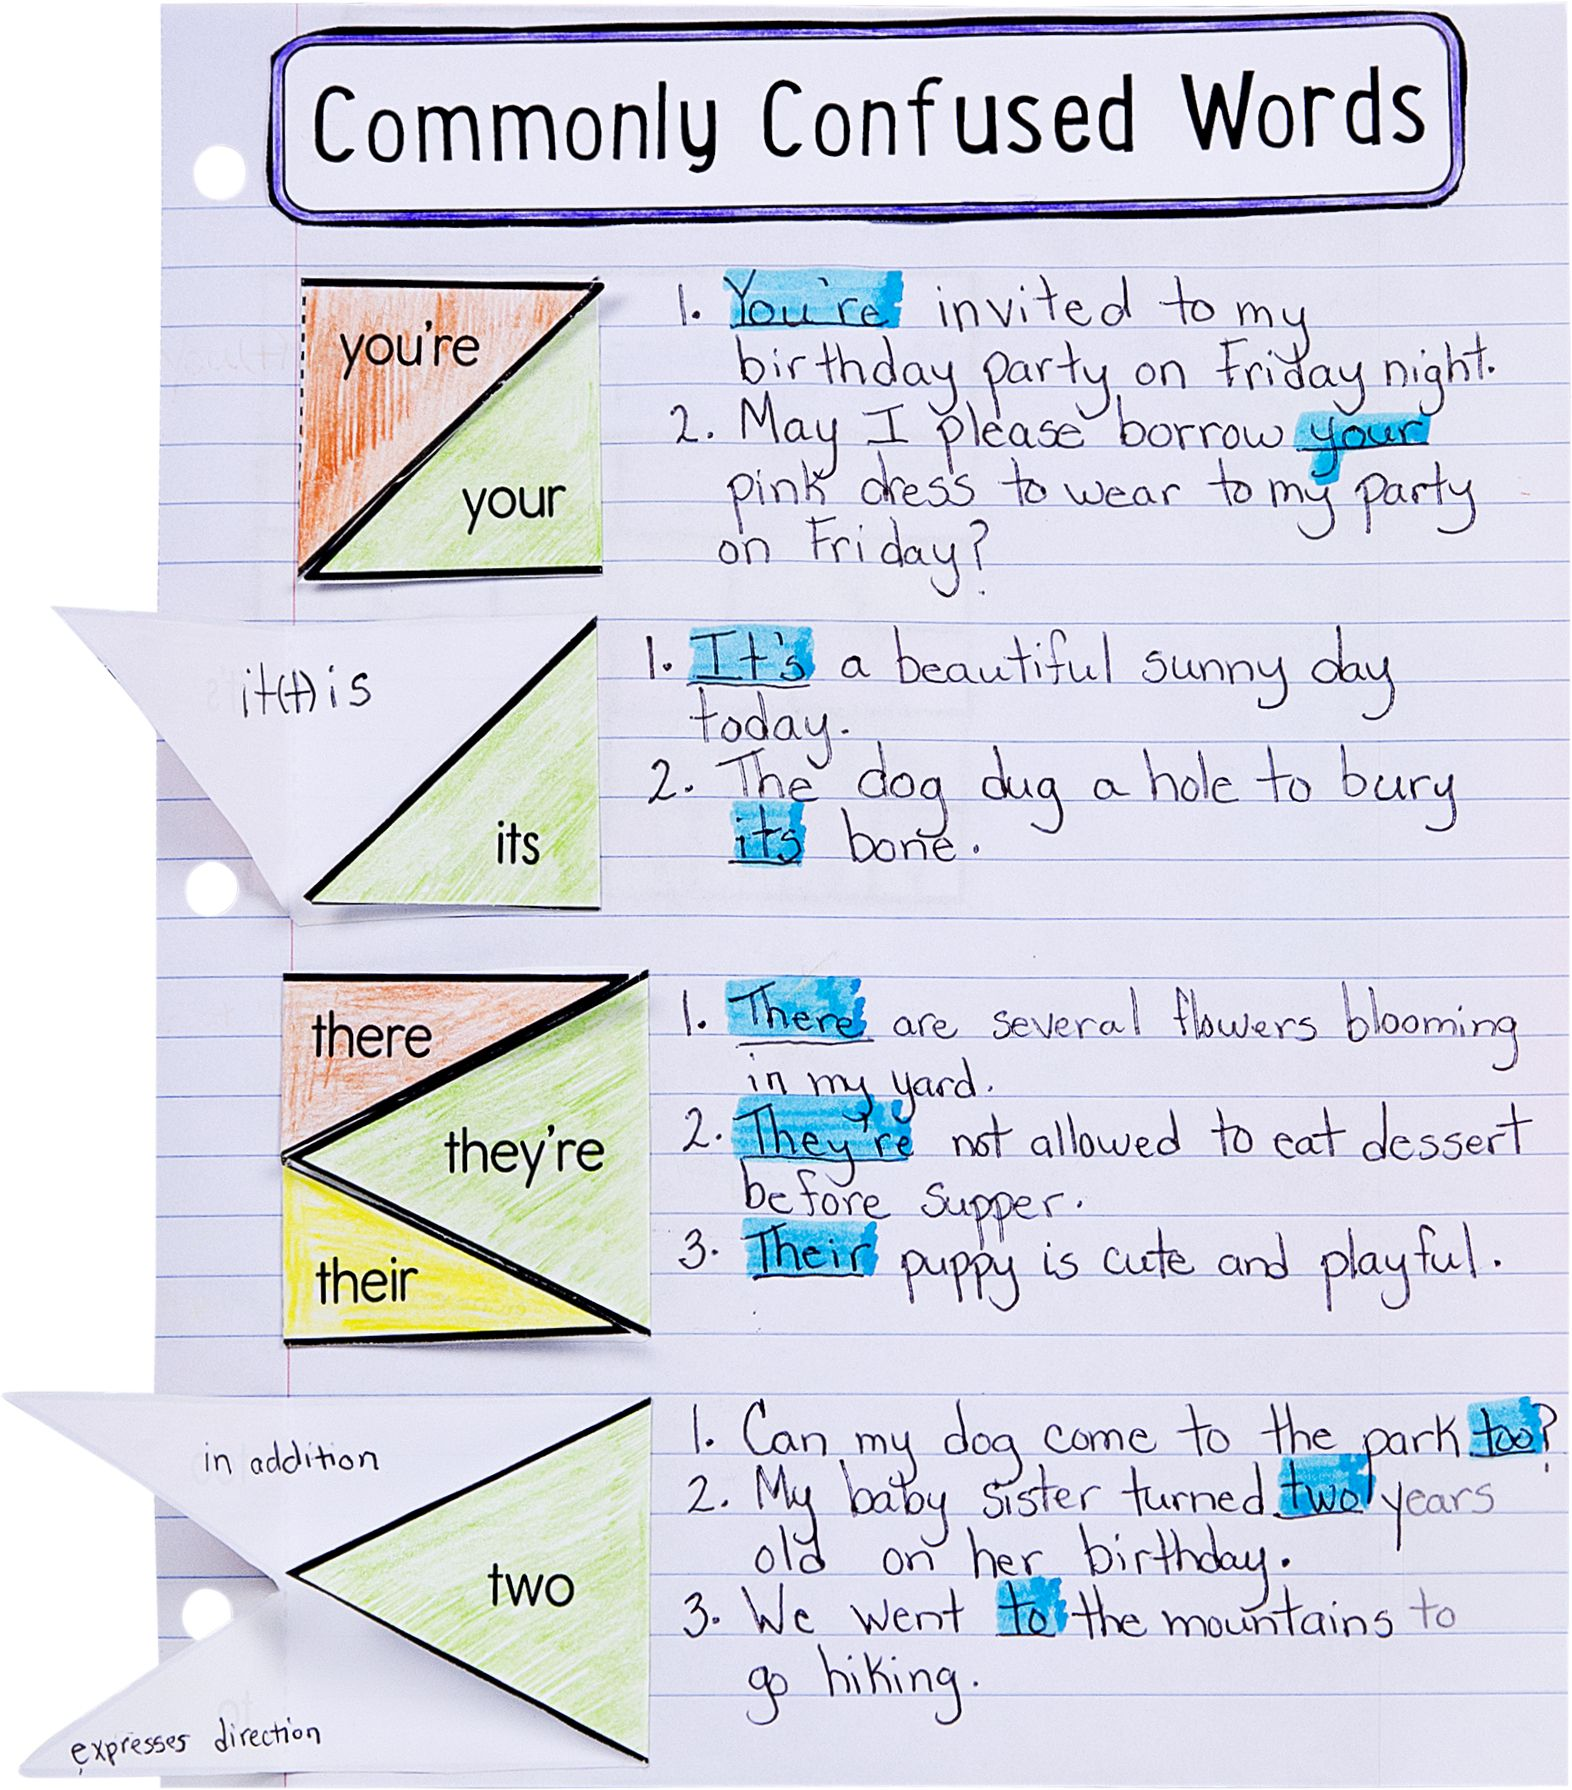 medium resolution of 18 Commonly confused words ideas   commonly confused words